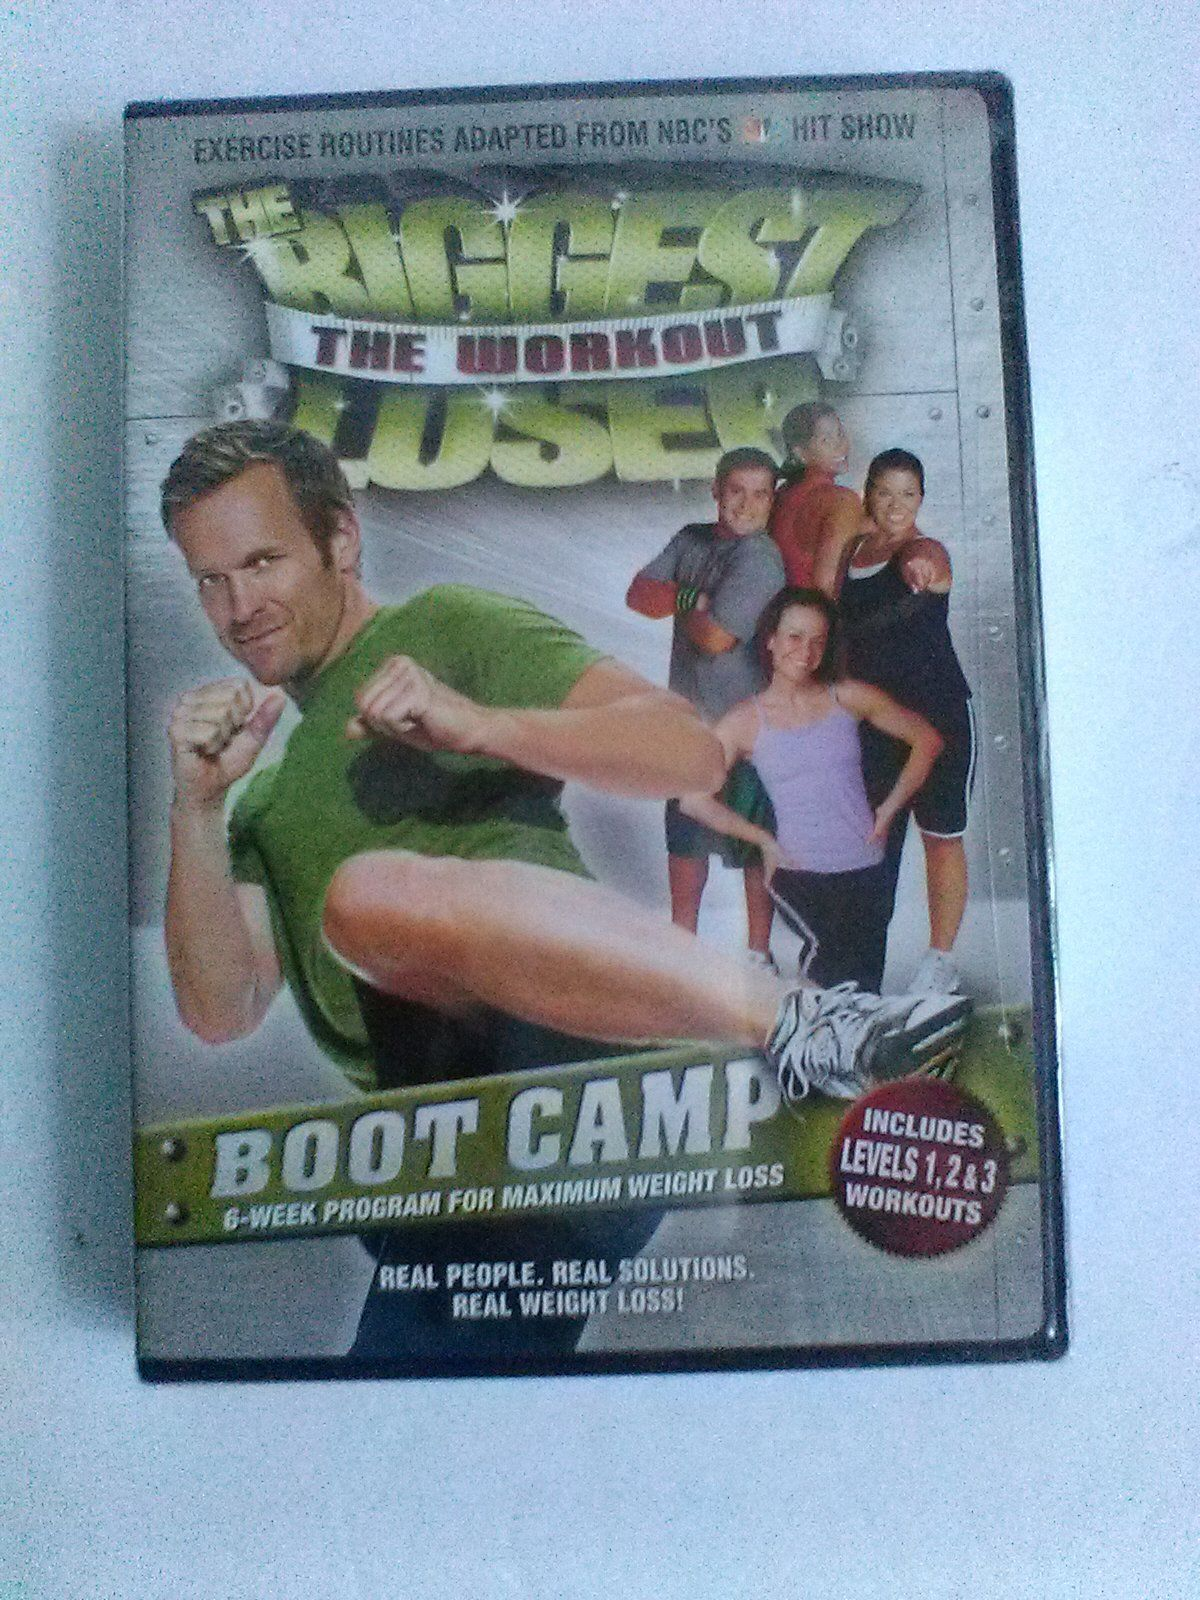 the biggest losers dvd the workout boot camp new physical fitness dvd hd dvd blu ray. Black Bedroom Furniture Sets. Home Design Ideas